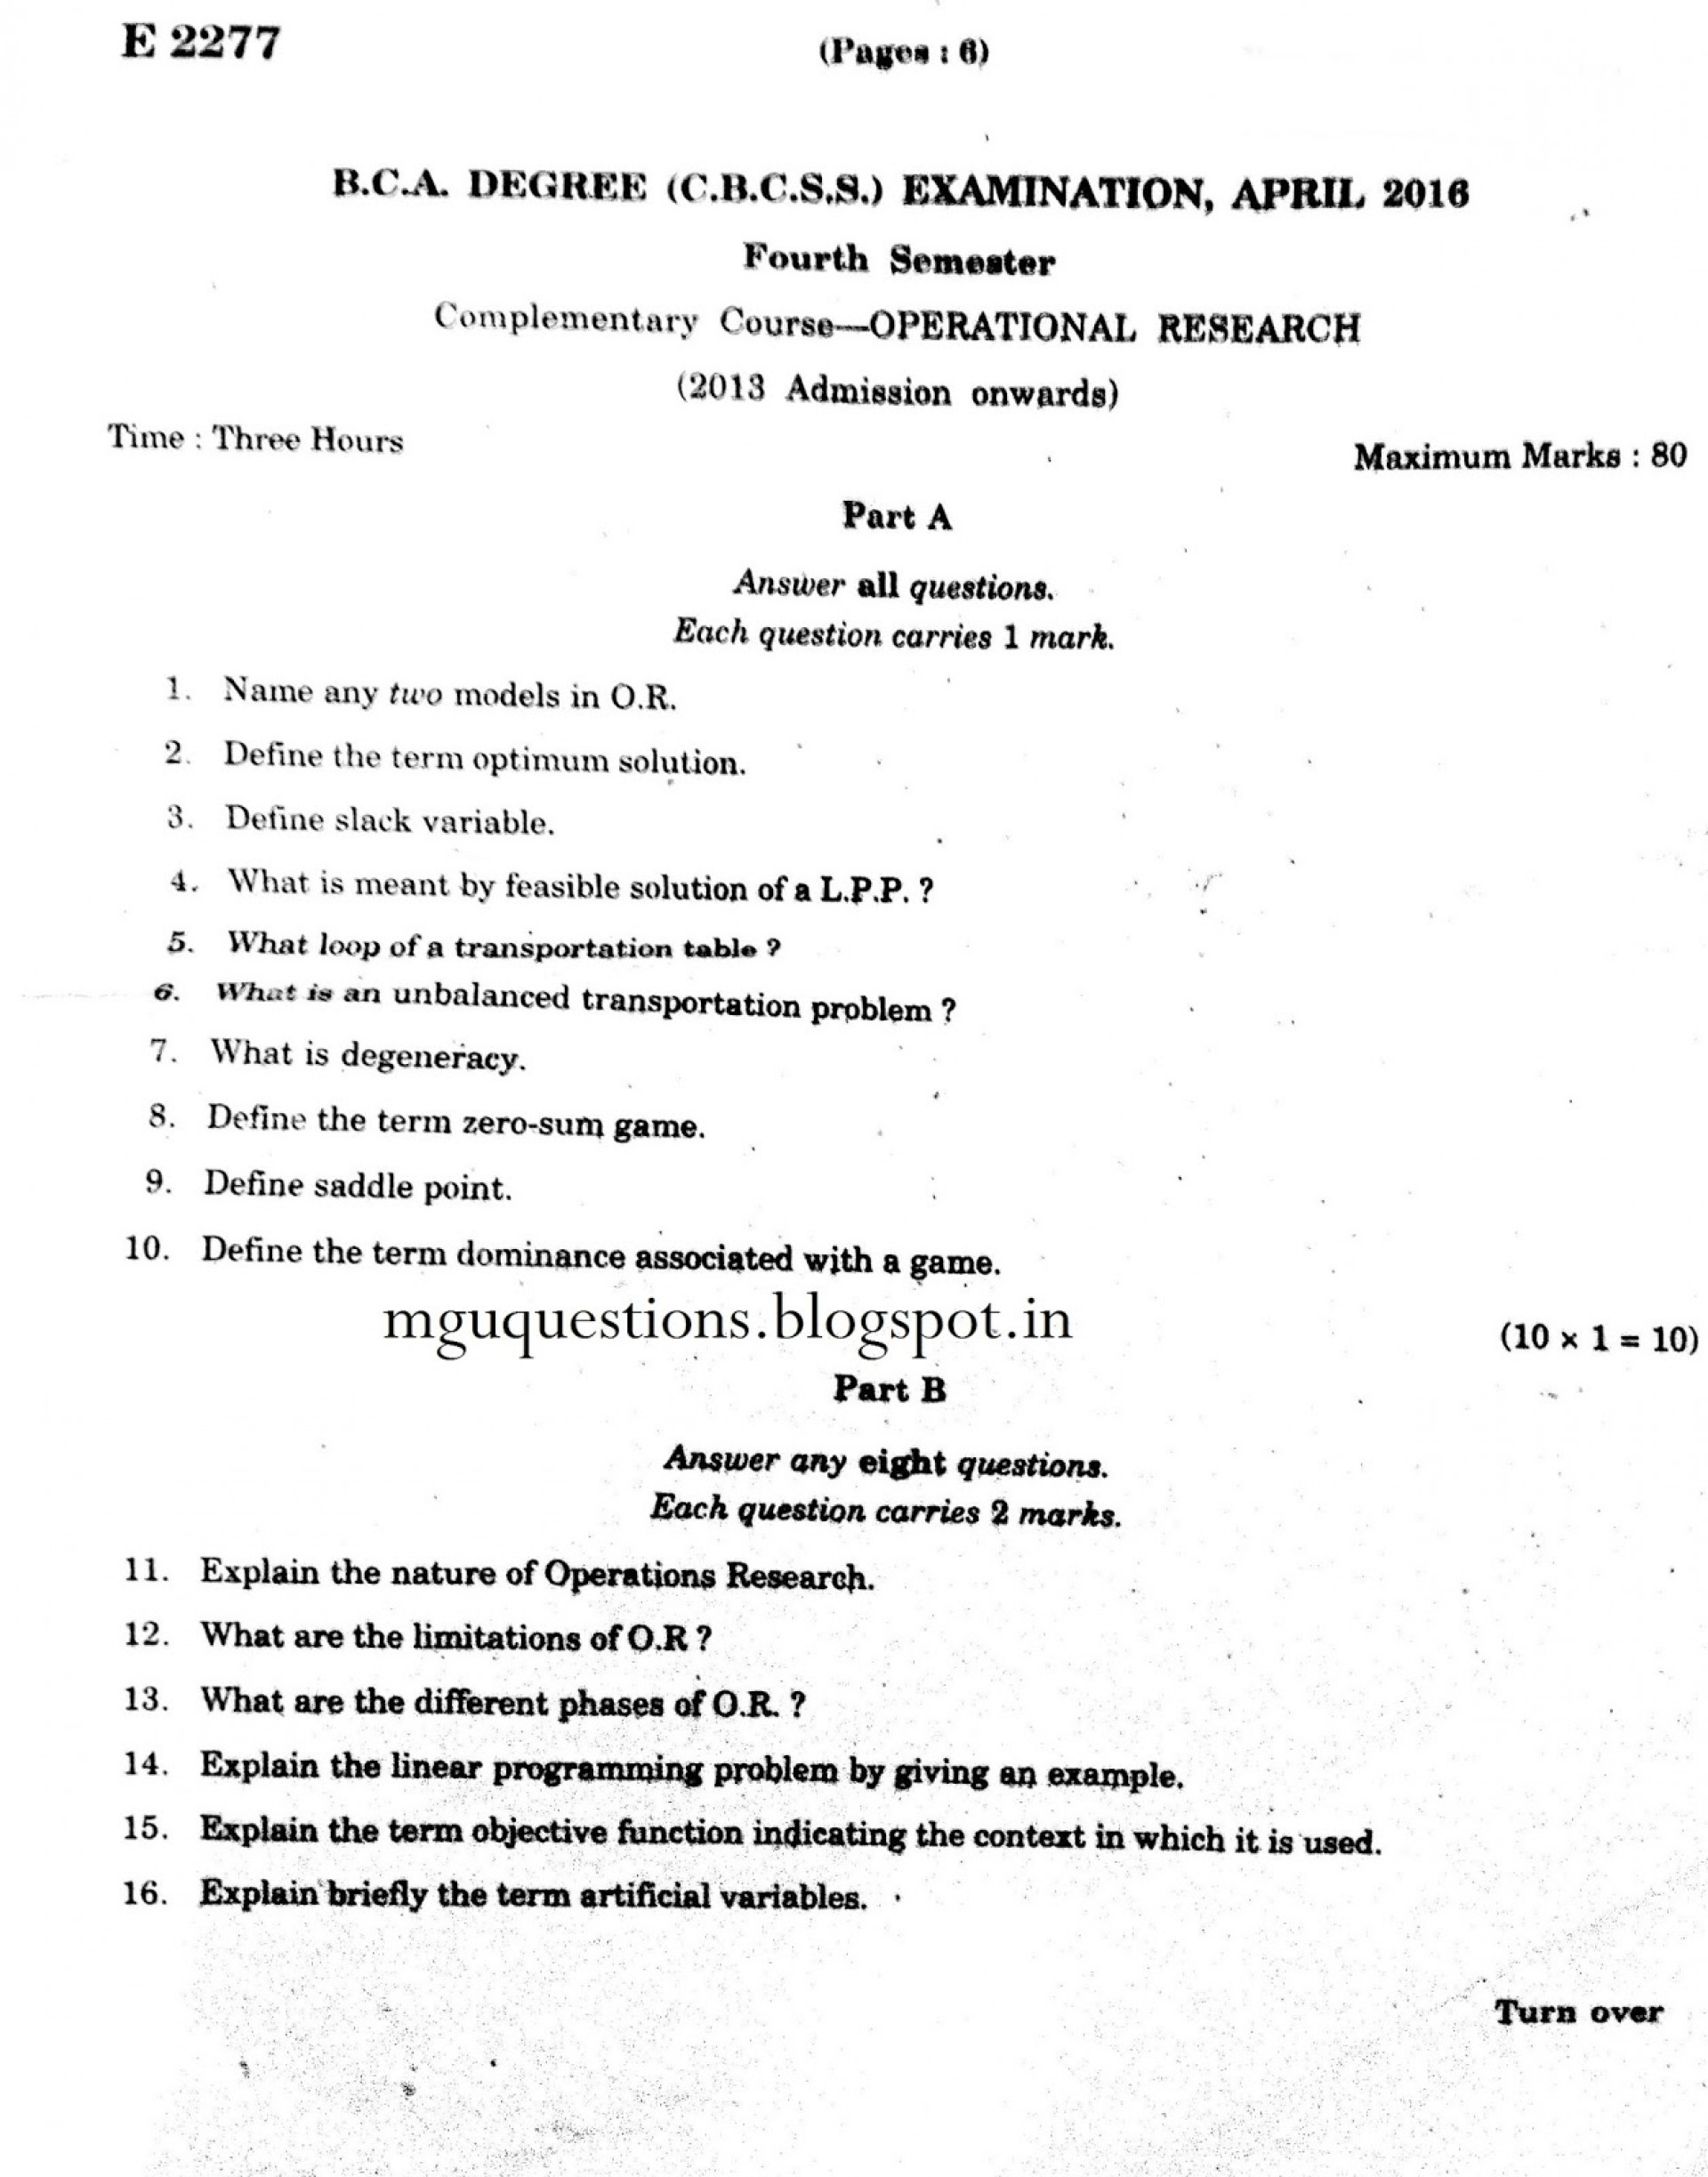 010 Bca2bdegree2bsemester2b42boperational2bresearch2b2016 Questions About Researchs Unique Research Papers Good To Ask Test 1920